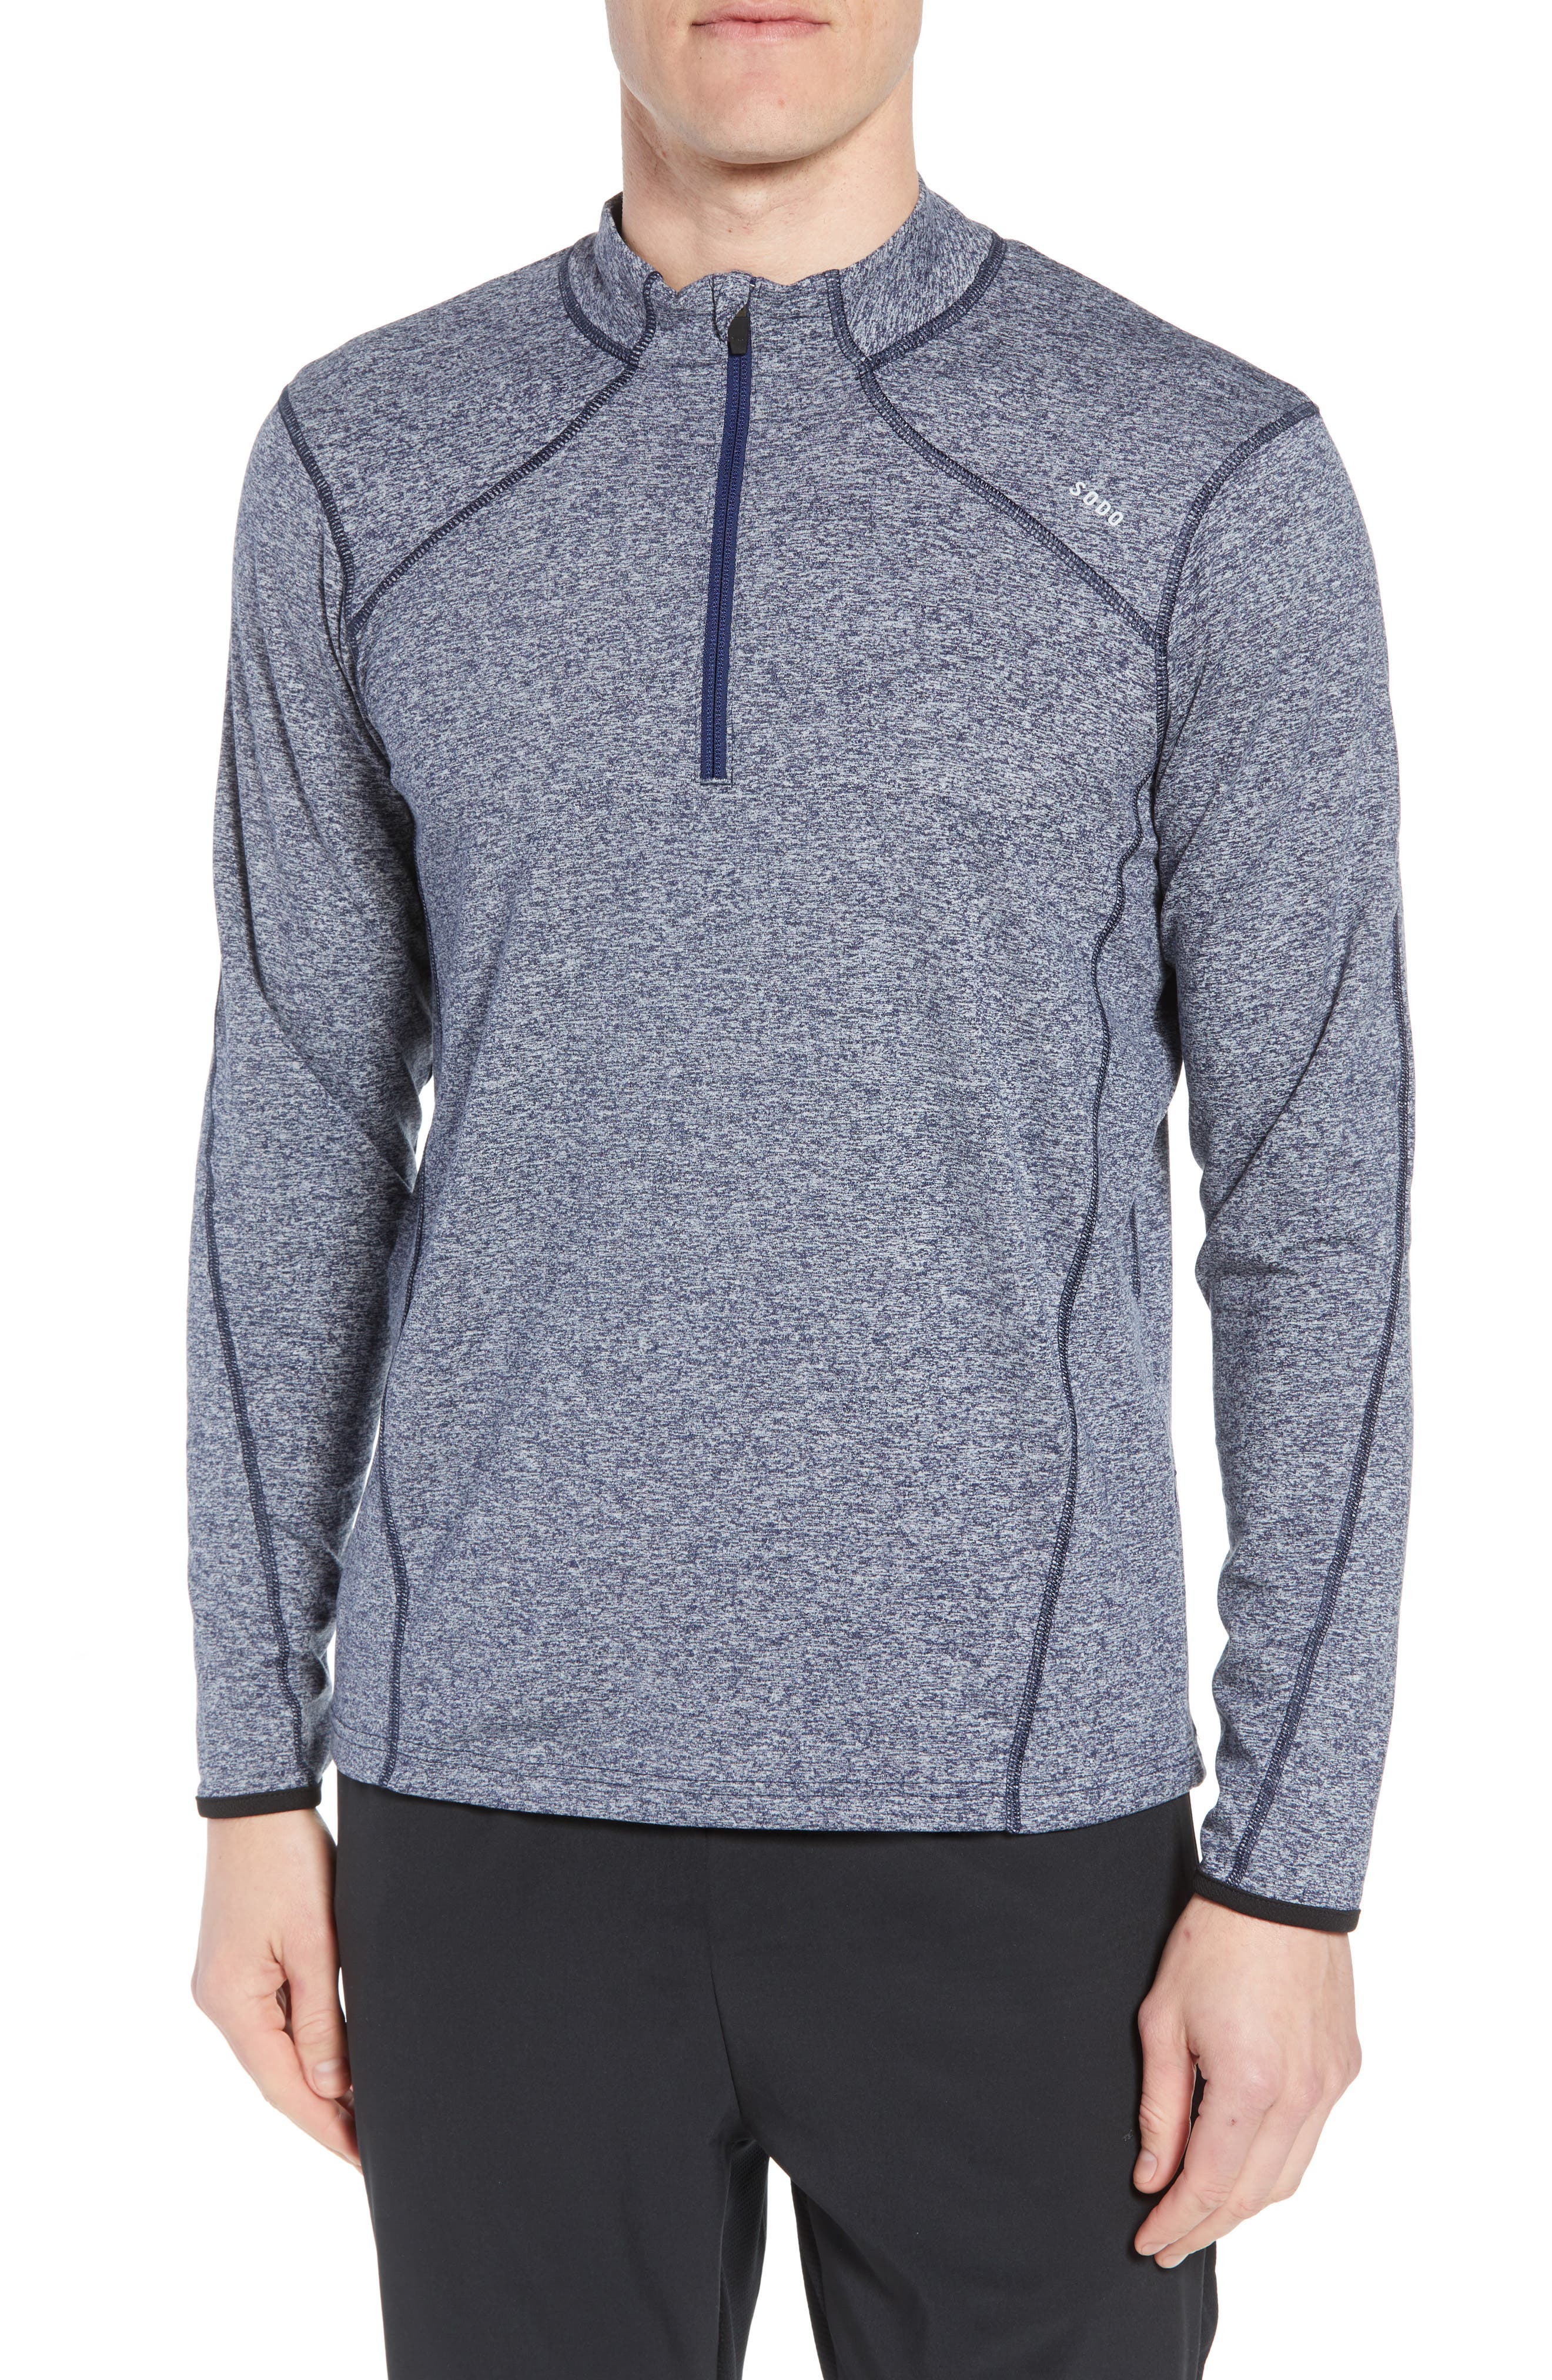 'Elevate' Moisture Wicking Stretch Quarter Zip Pullover,                             Main thumbnail 1, color,                             Heather Navy/ Navy